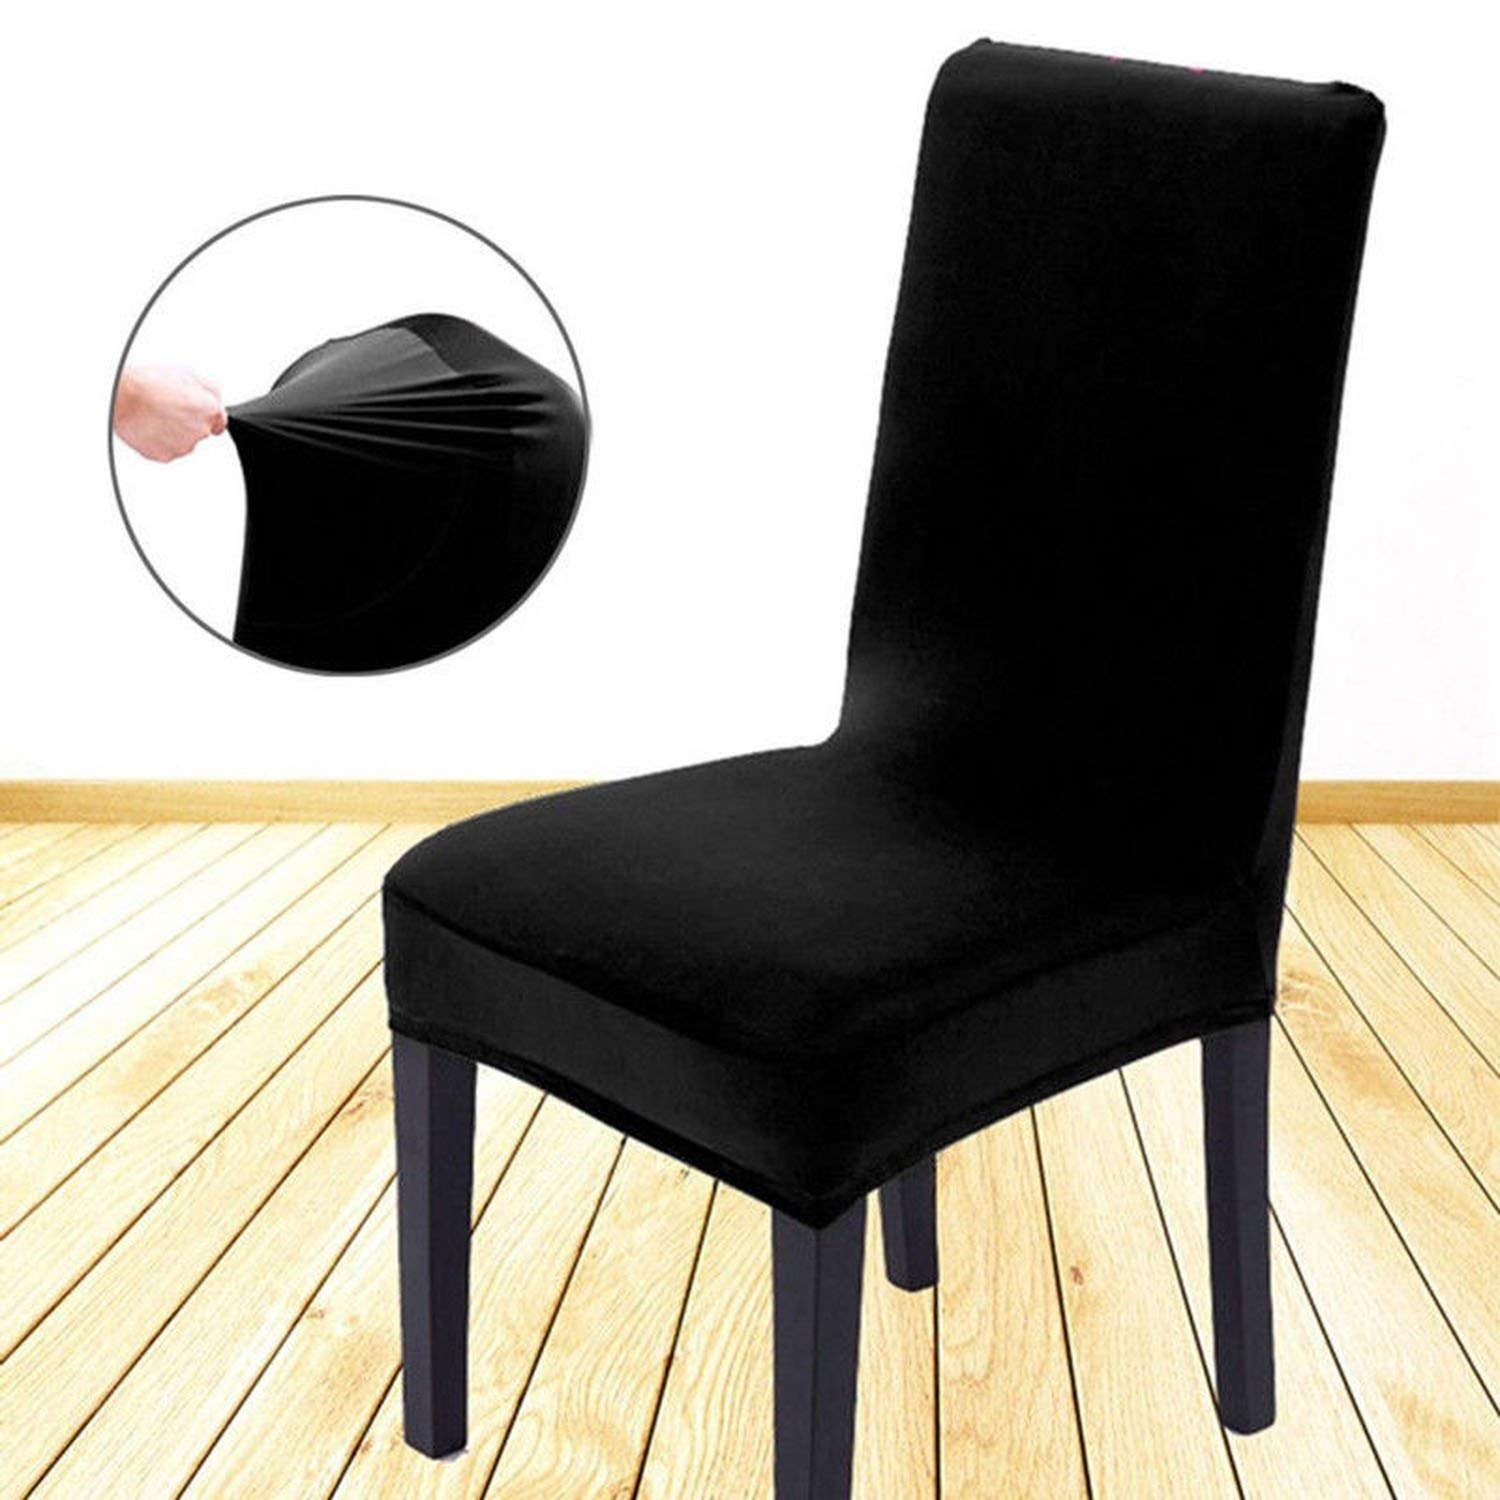 pleasantlyday Comfortable Wrinkle Resistant Chair Hood Removable Stretch Dining Room,Black,Other by pleasantlyday (Image #3)